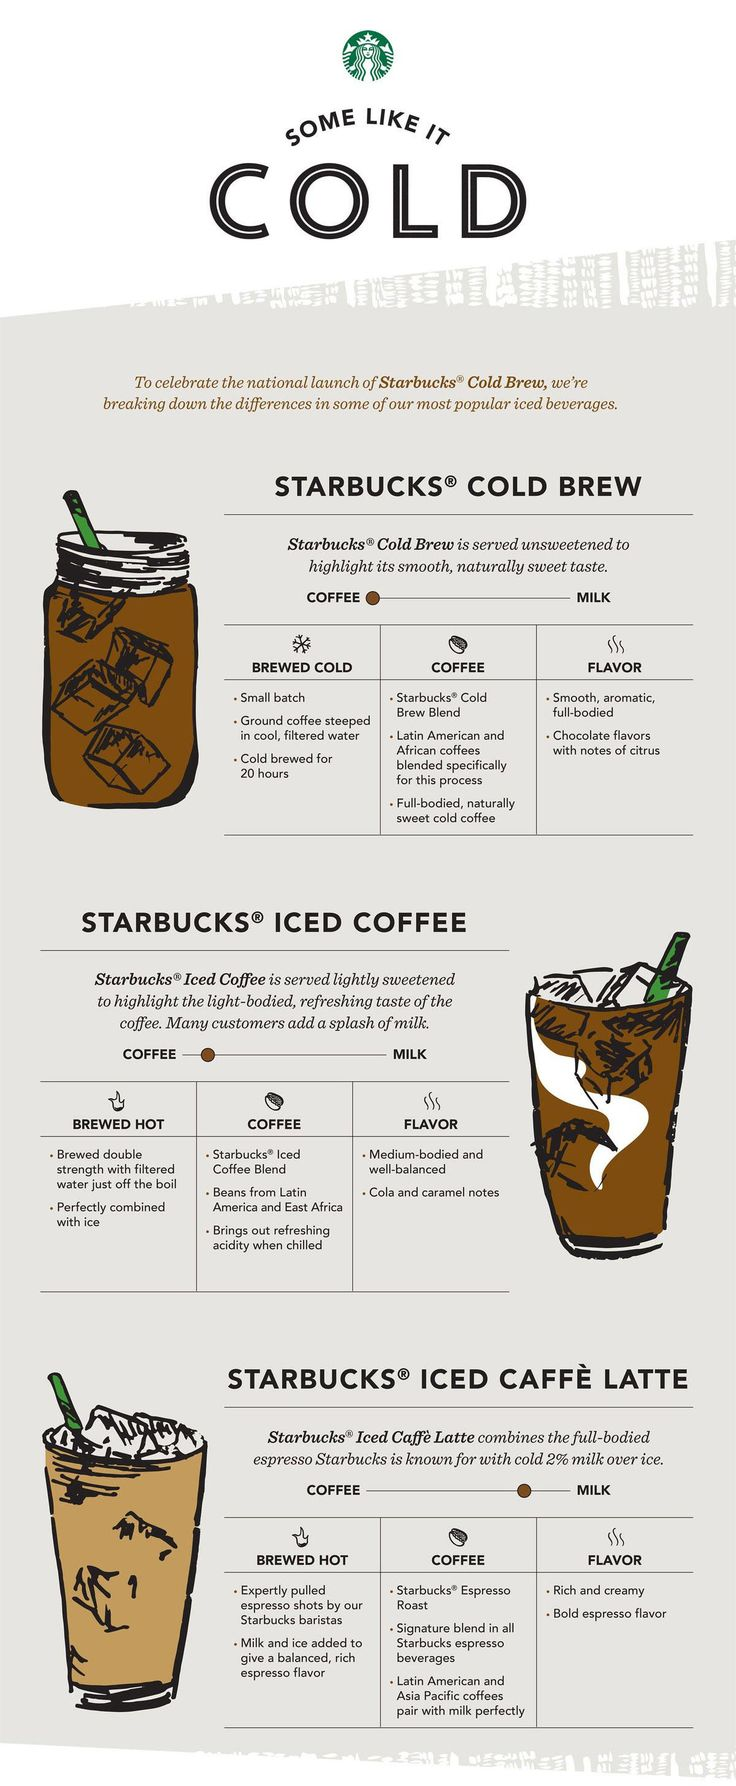 Different between starbuck and pacific coffee